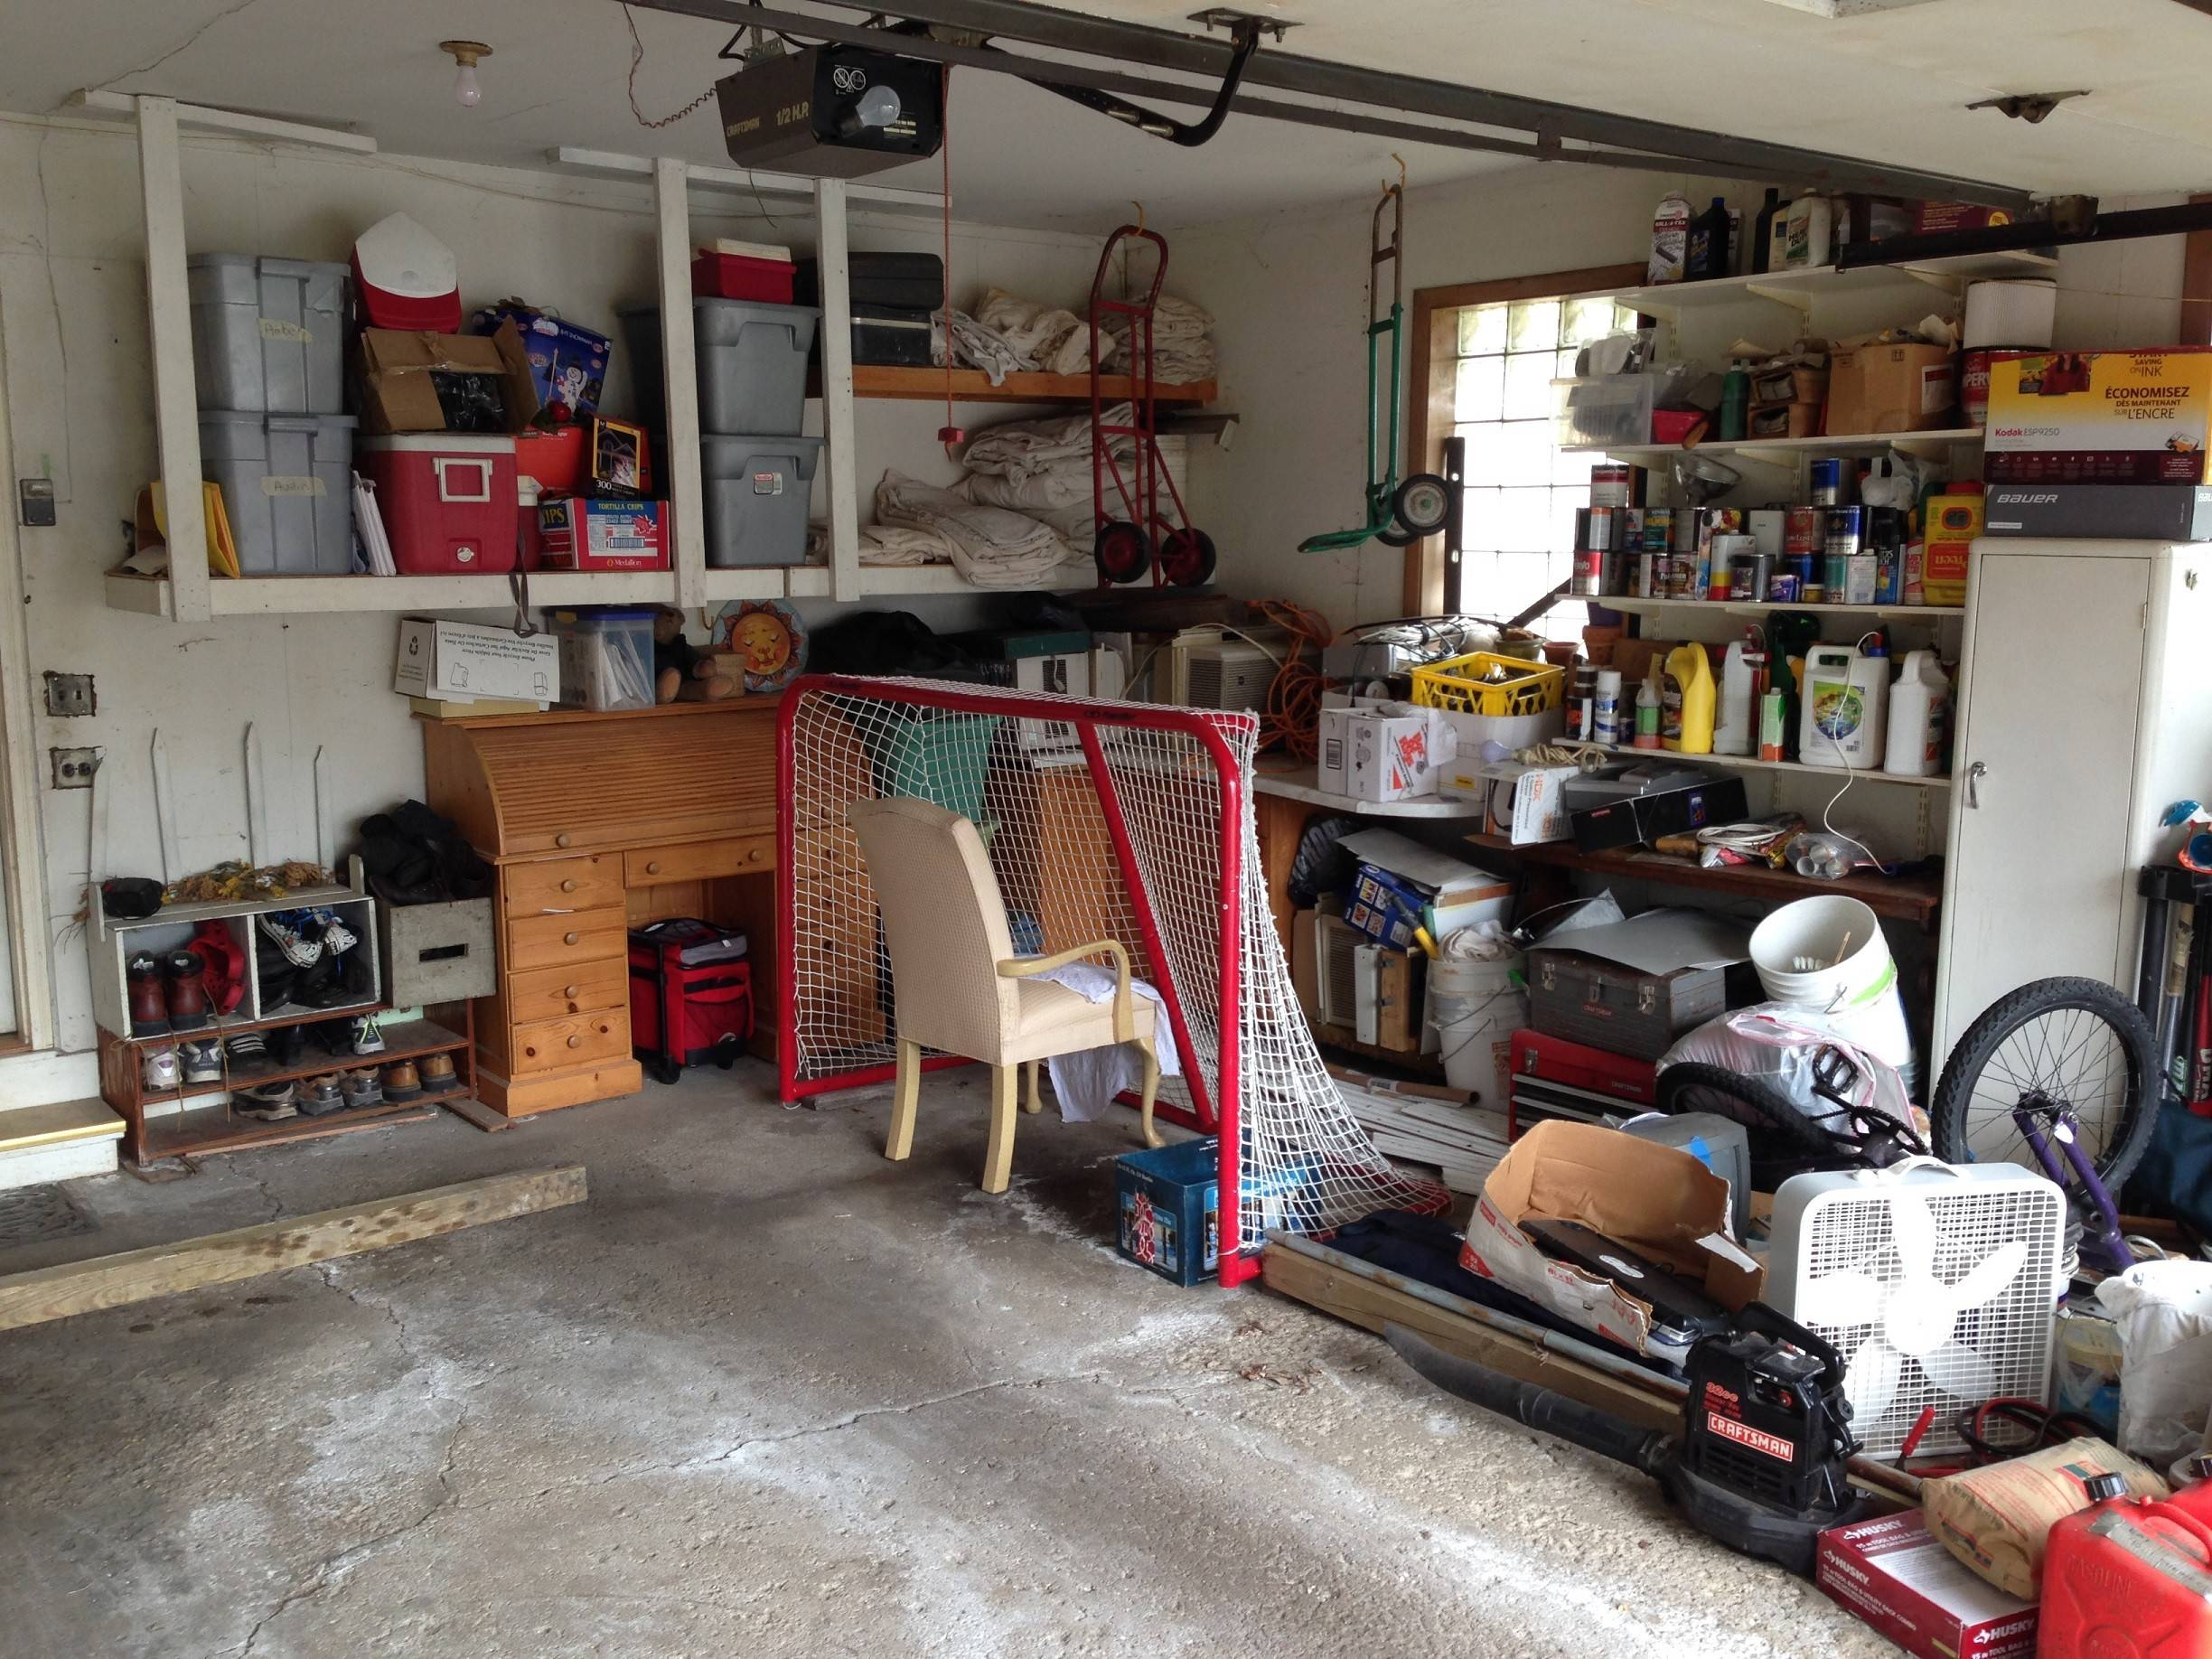 The Eglund's garage floor was pitted and cracked before the makeover.